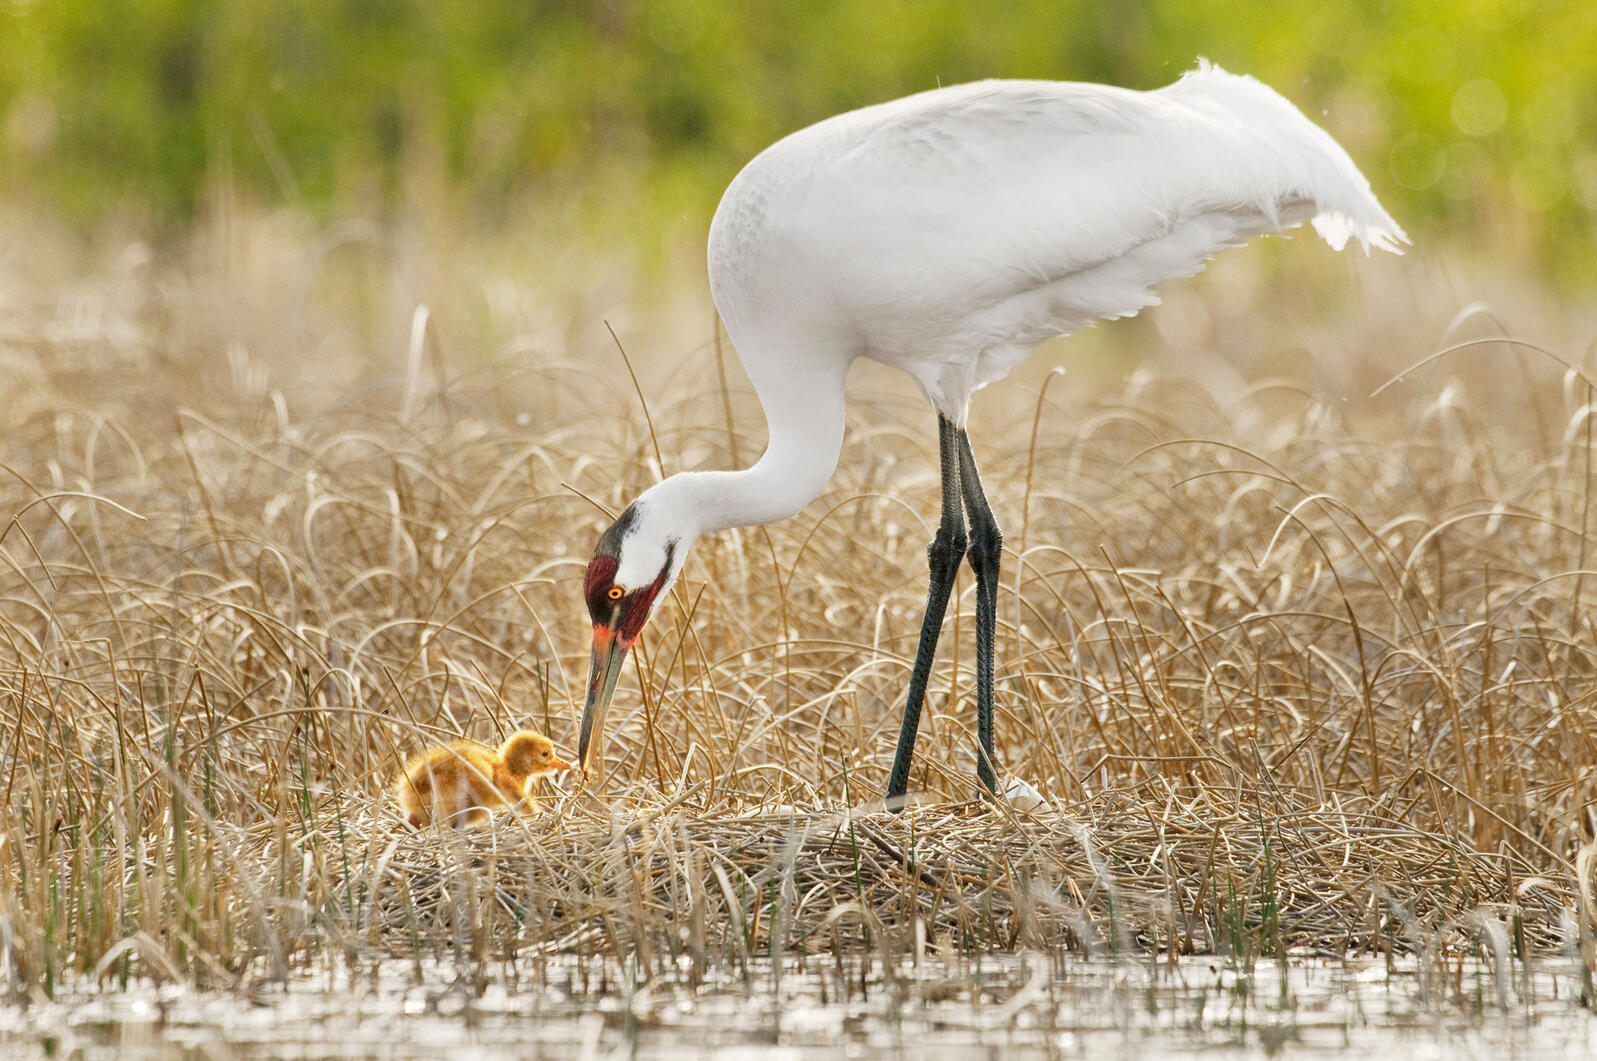 A Whooping Crane offers an insect to its hatchling in Wood Buffalo National Park, Canada. Klaus Nigge/National Geographic Creative